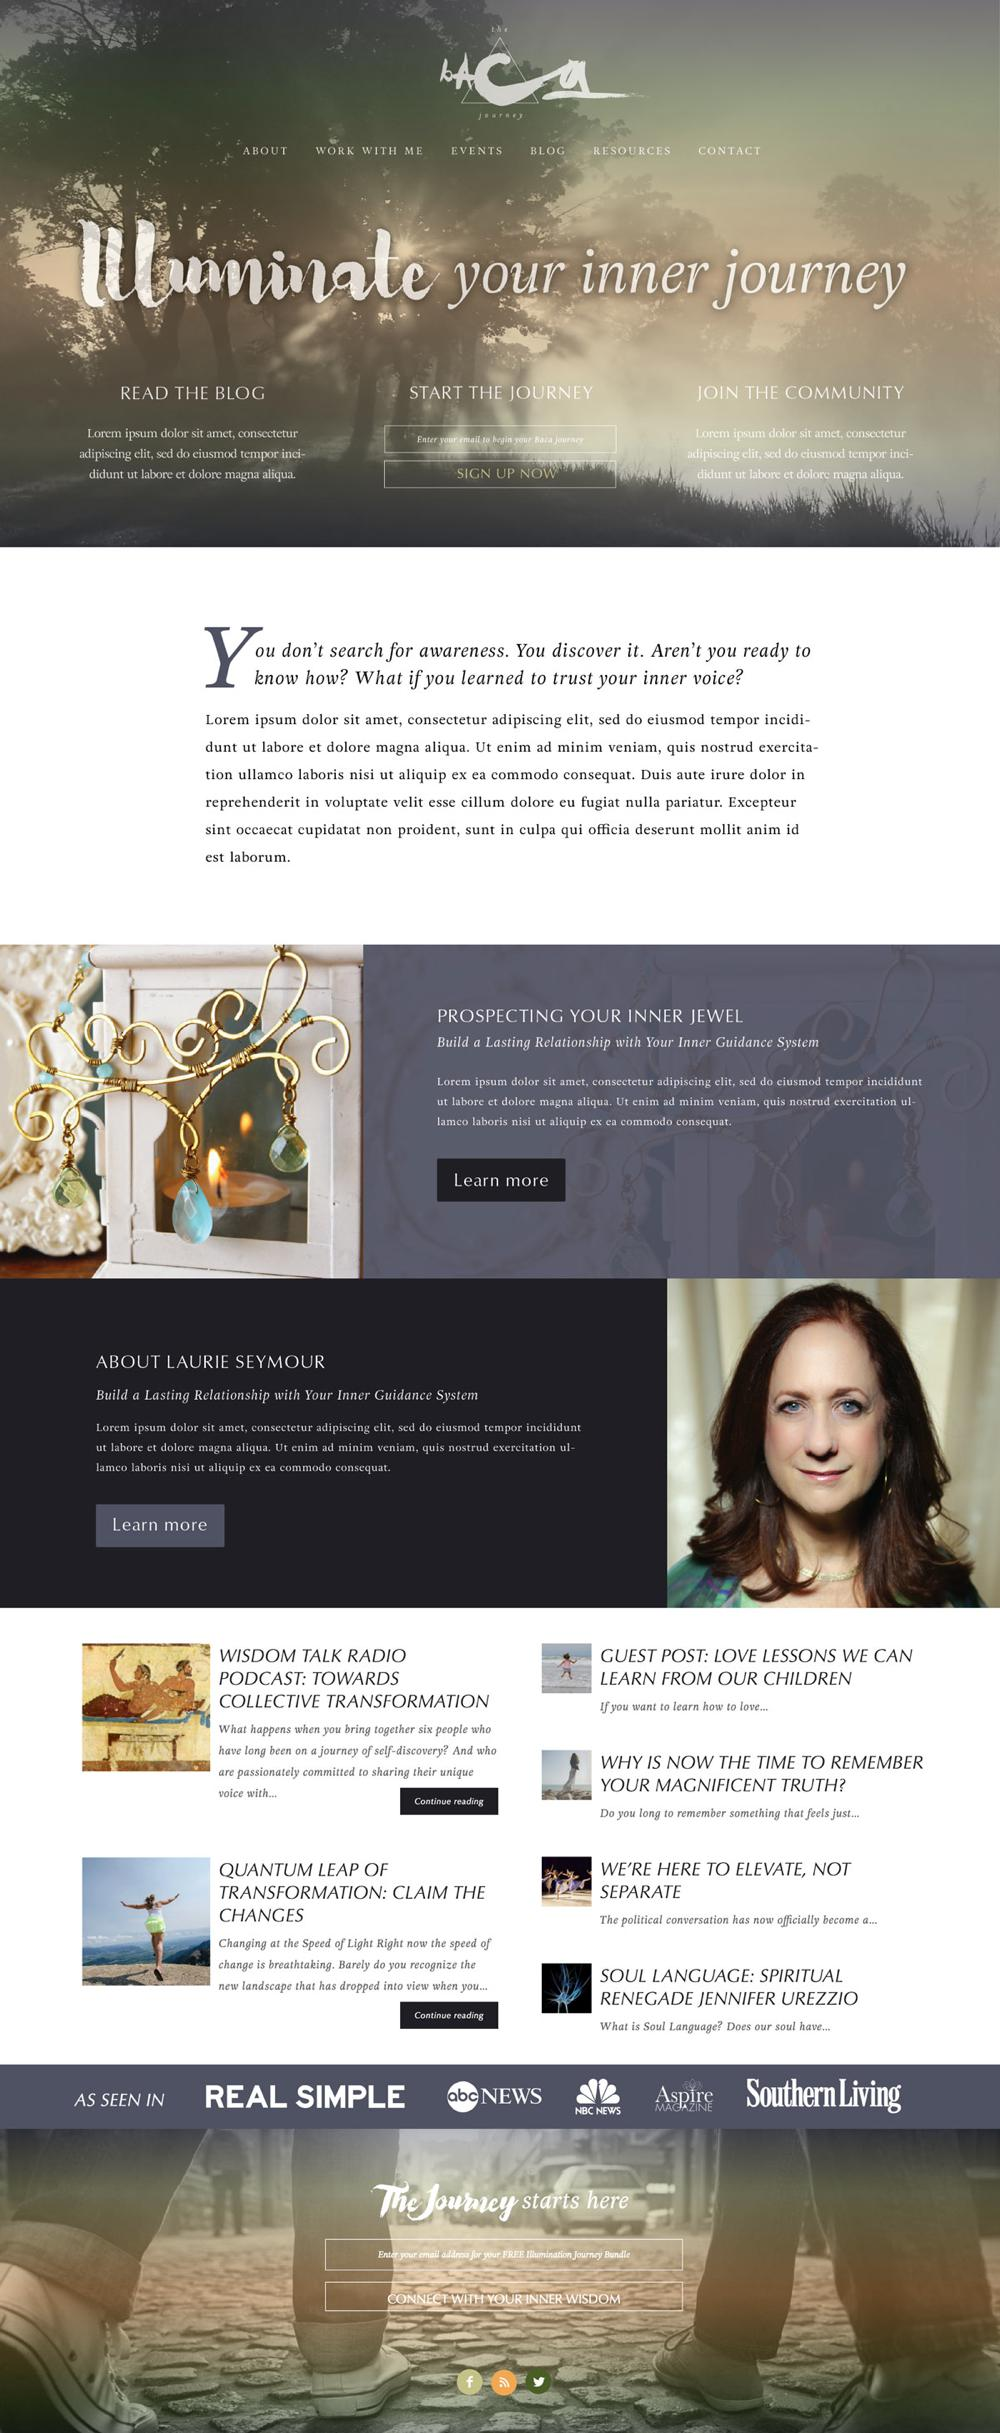 The-Baca-Journey-WordPress-Web-Design-RKA-ink